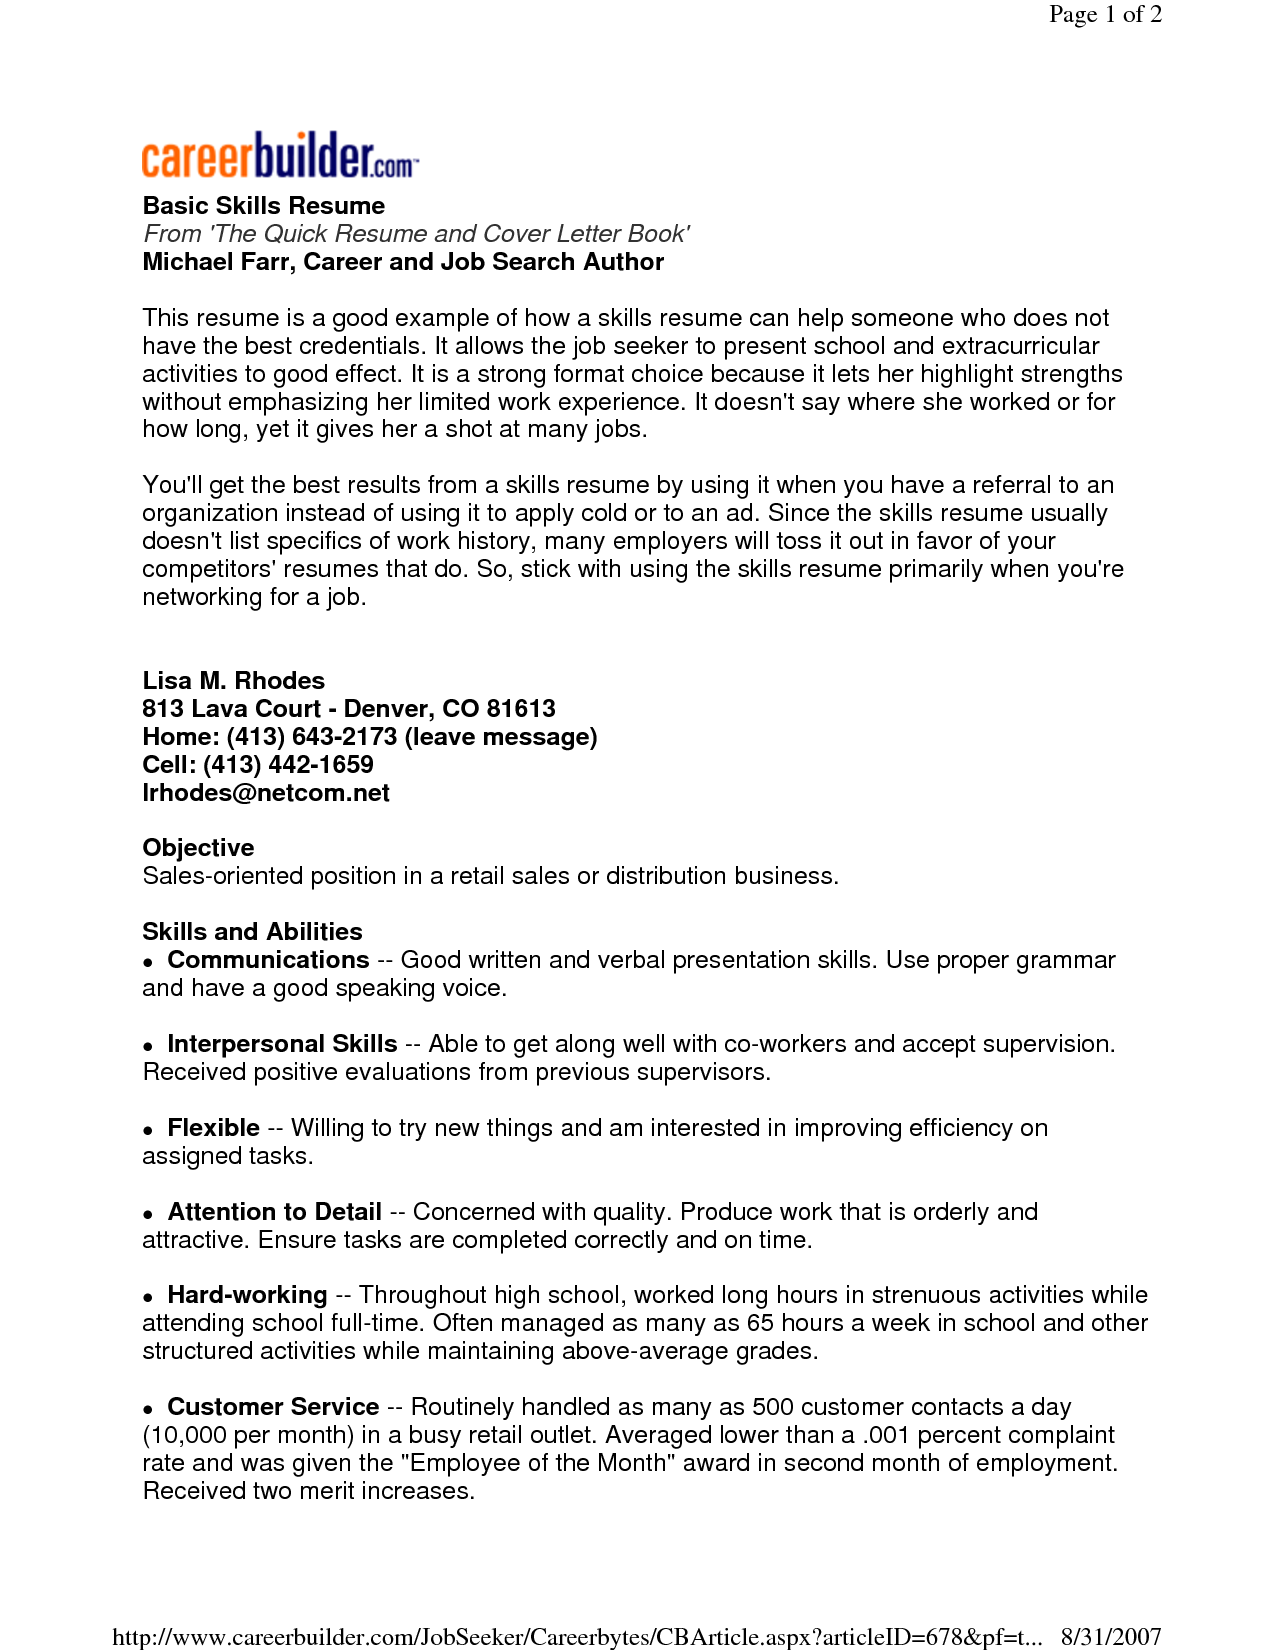 computer skills resume section resume language skills an example of skills section in a resume the computer skills in resume